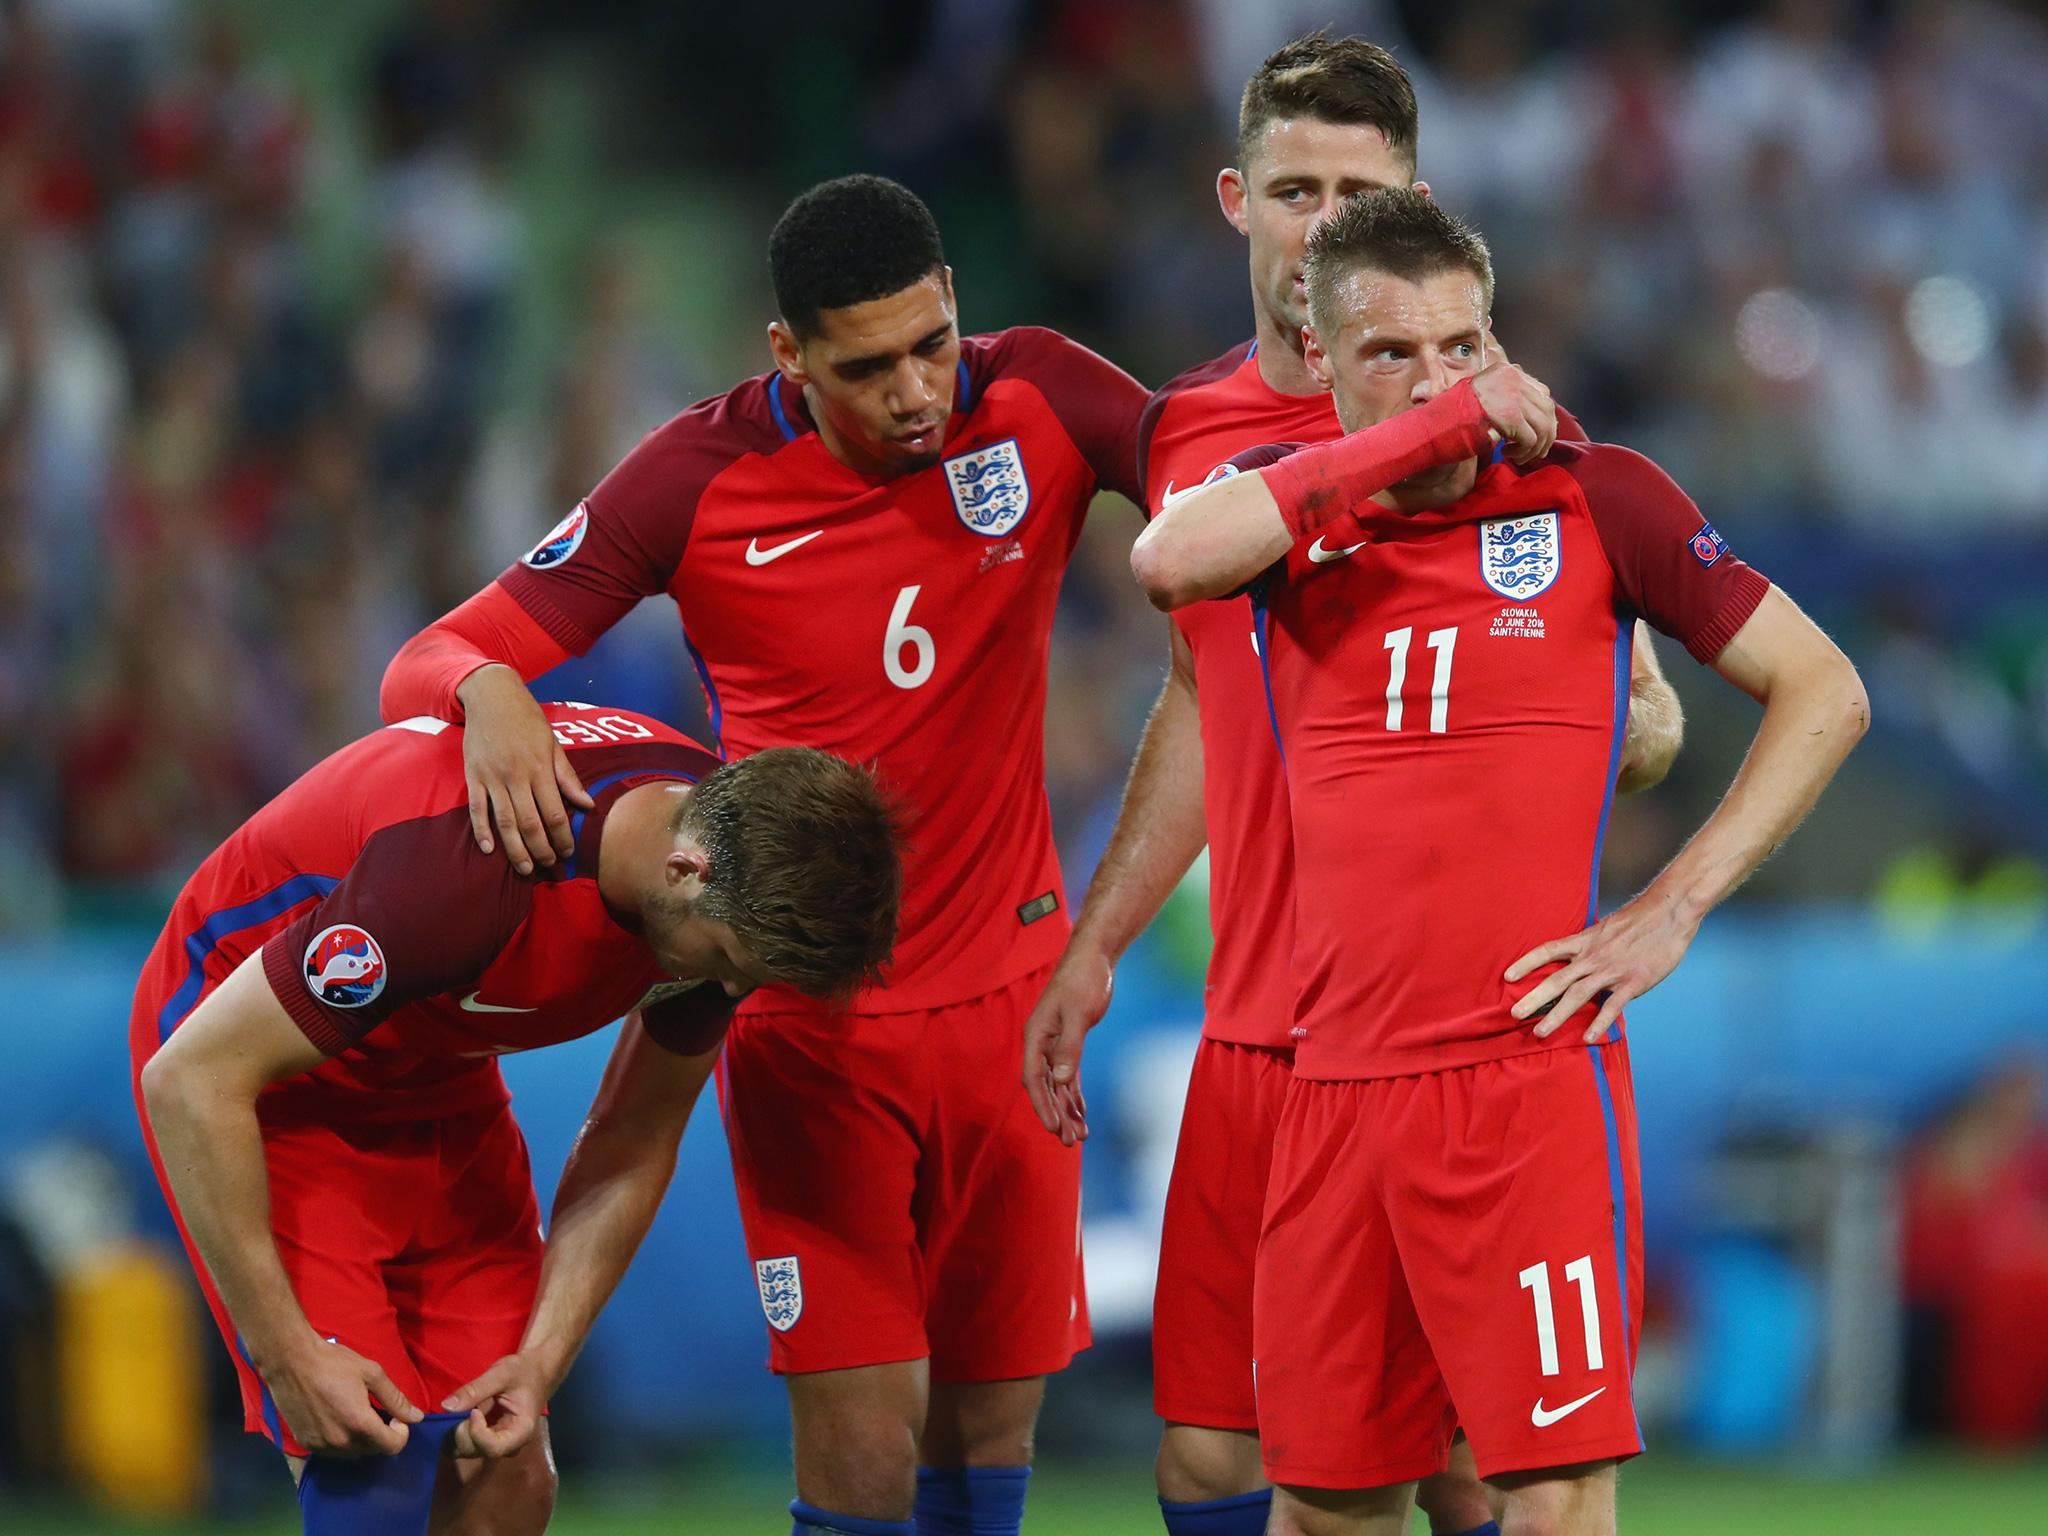 England to employ full-time sports psychologists at tournaments after Euro 2016 elimination